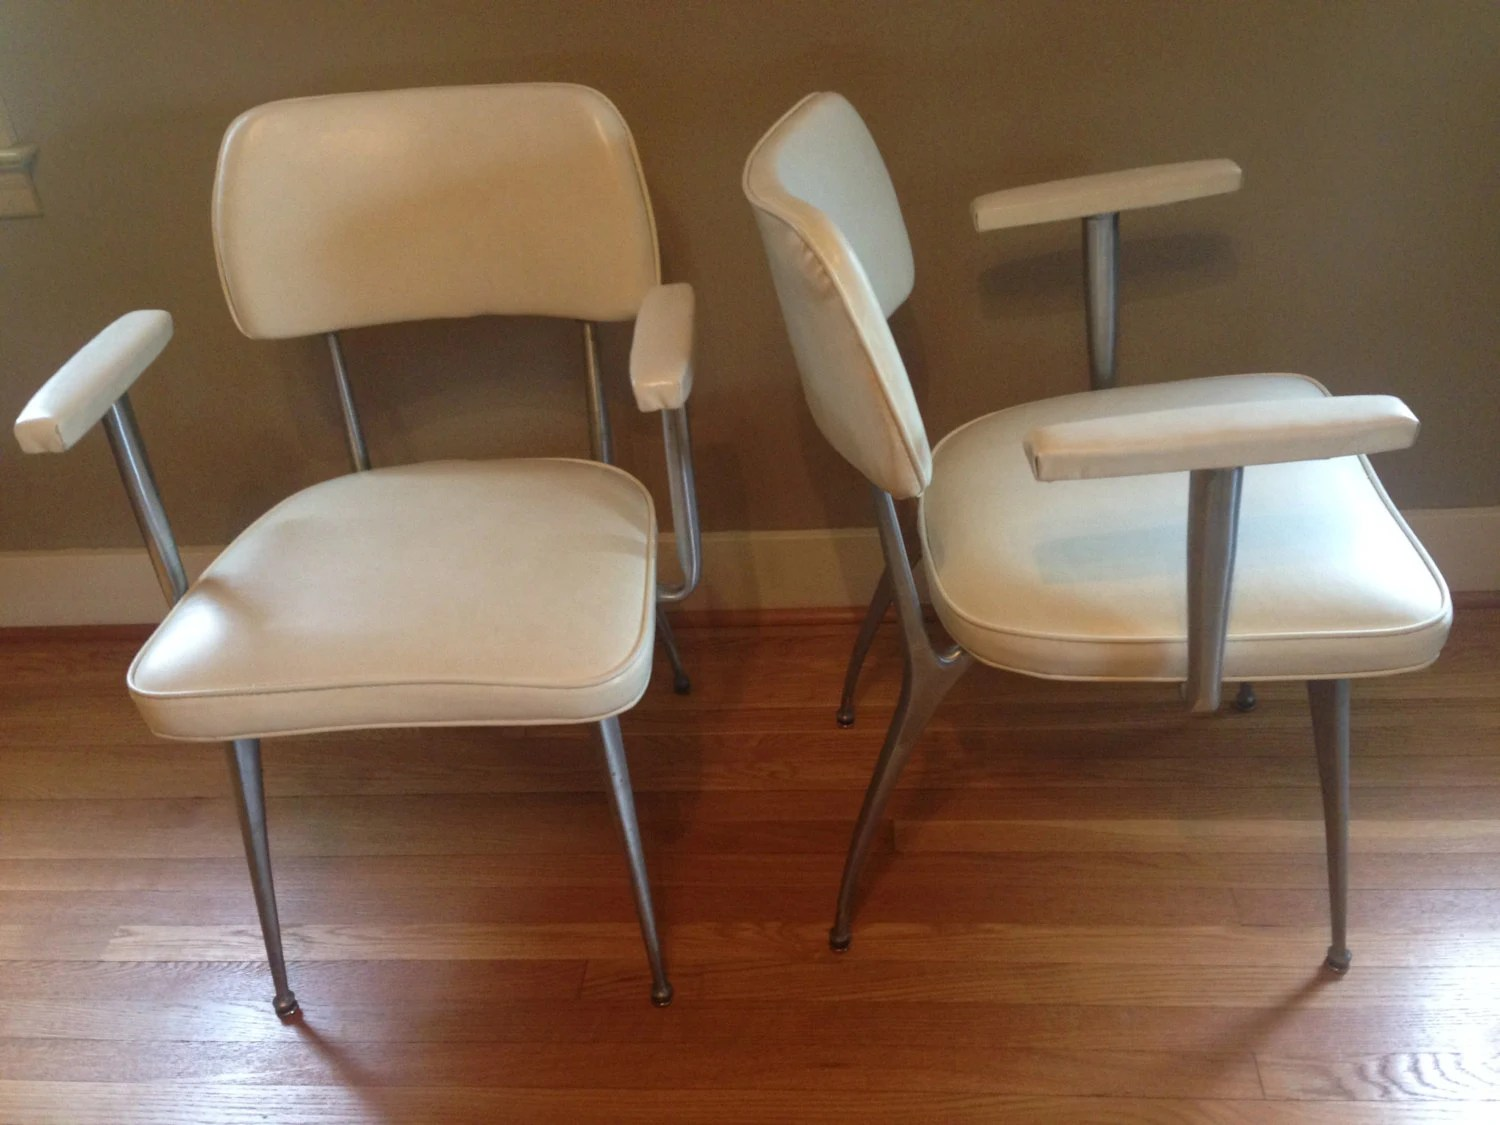 shelby williams chairs wedding chair rentals cheap reserved reduced two mid century gazelle